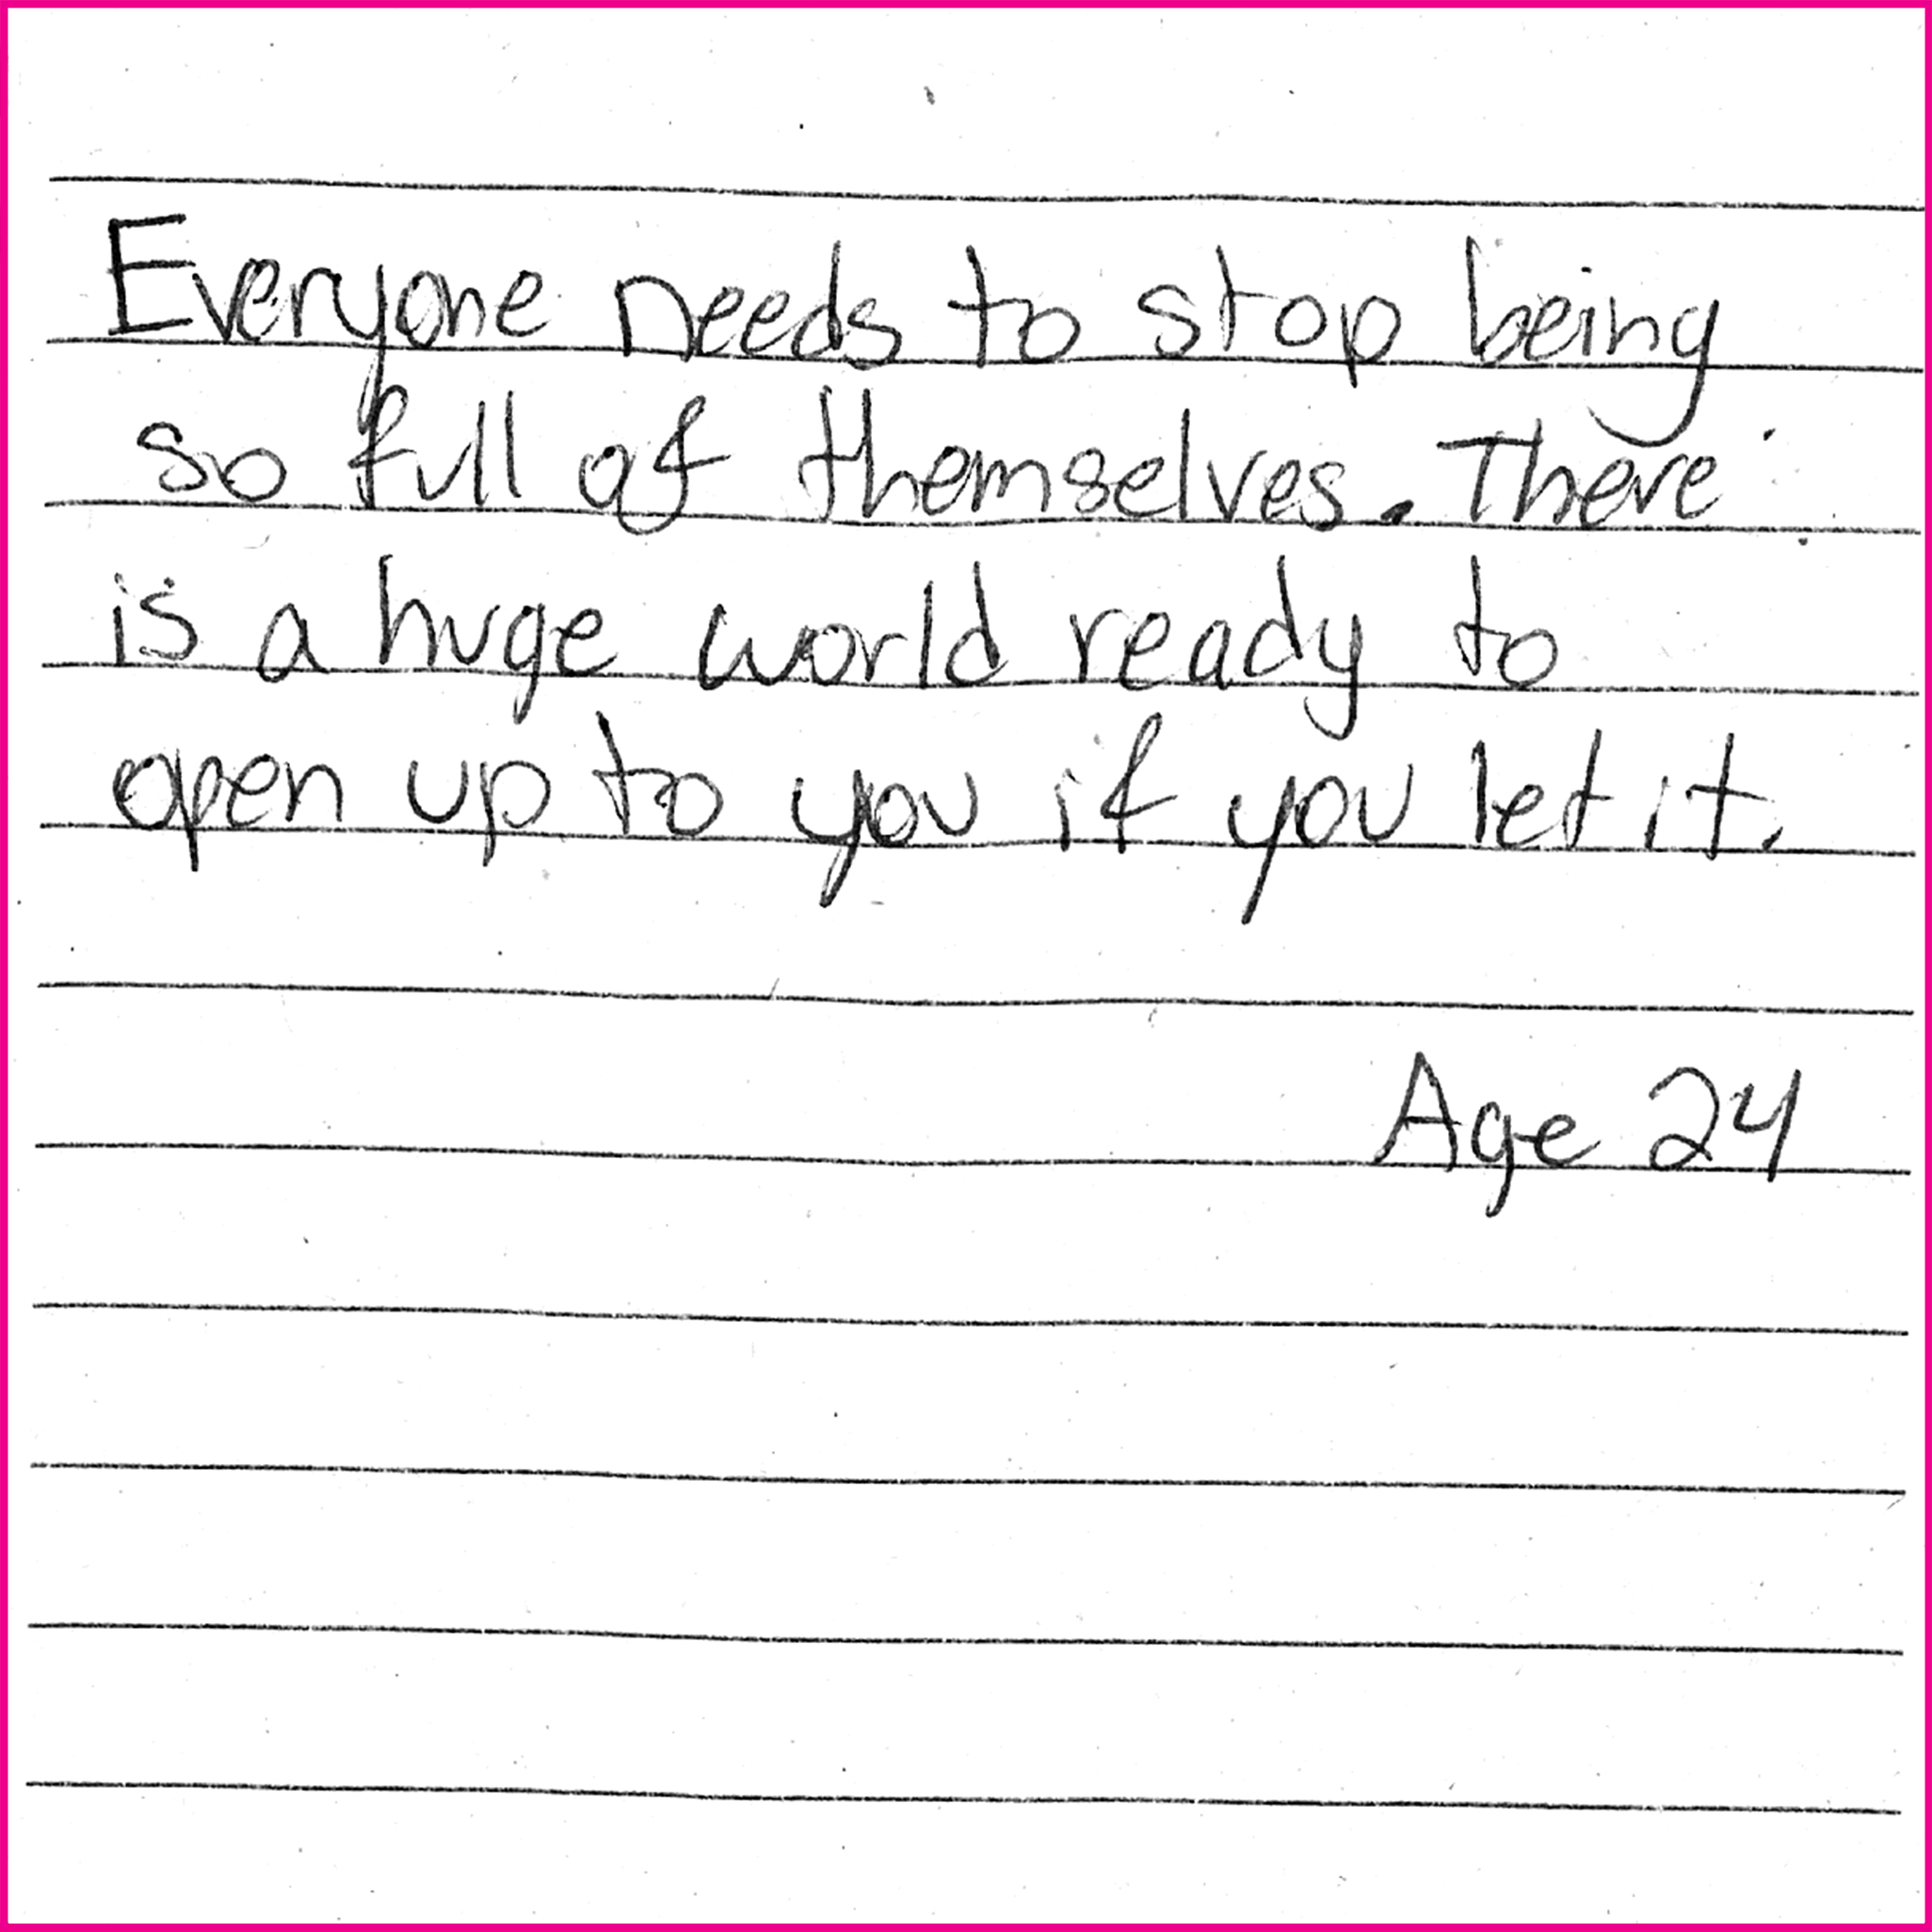 Everyone needs to stop being so full of themselves. There is a huge world ready to open up to you if you let it - Age 24